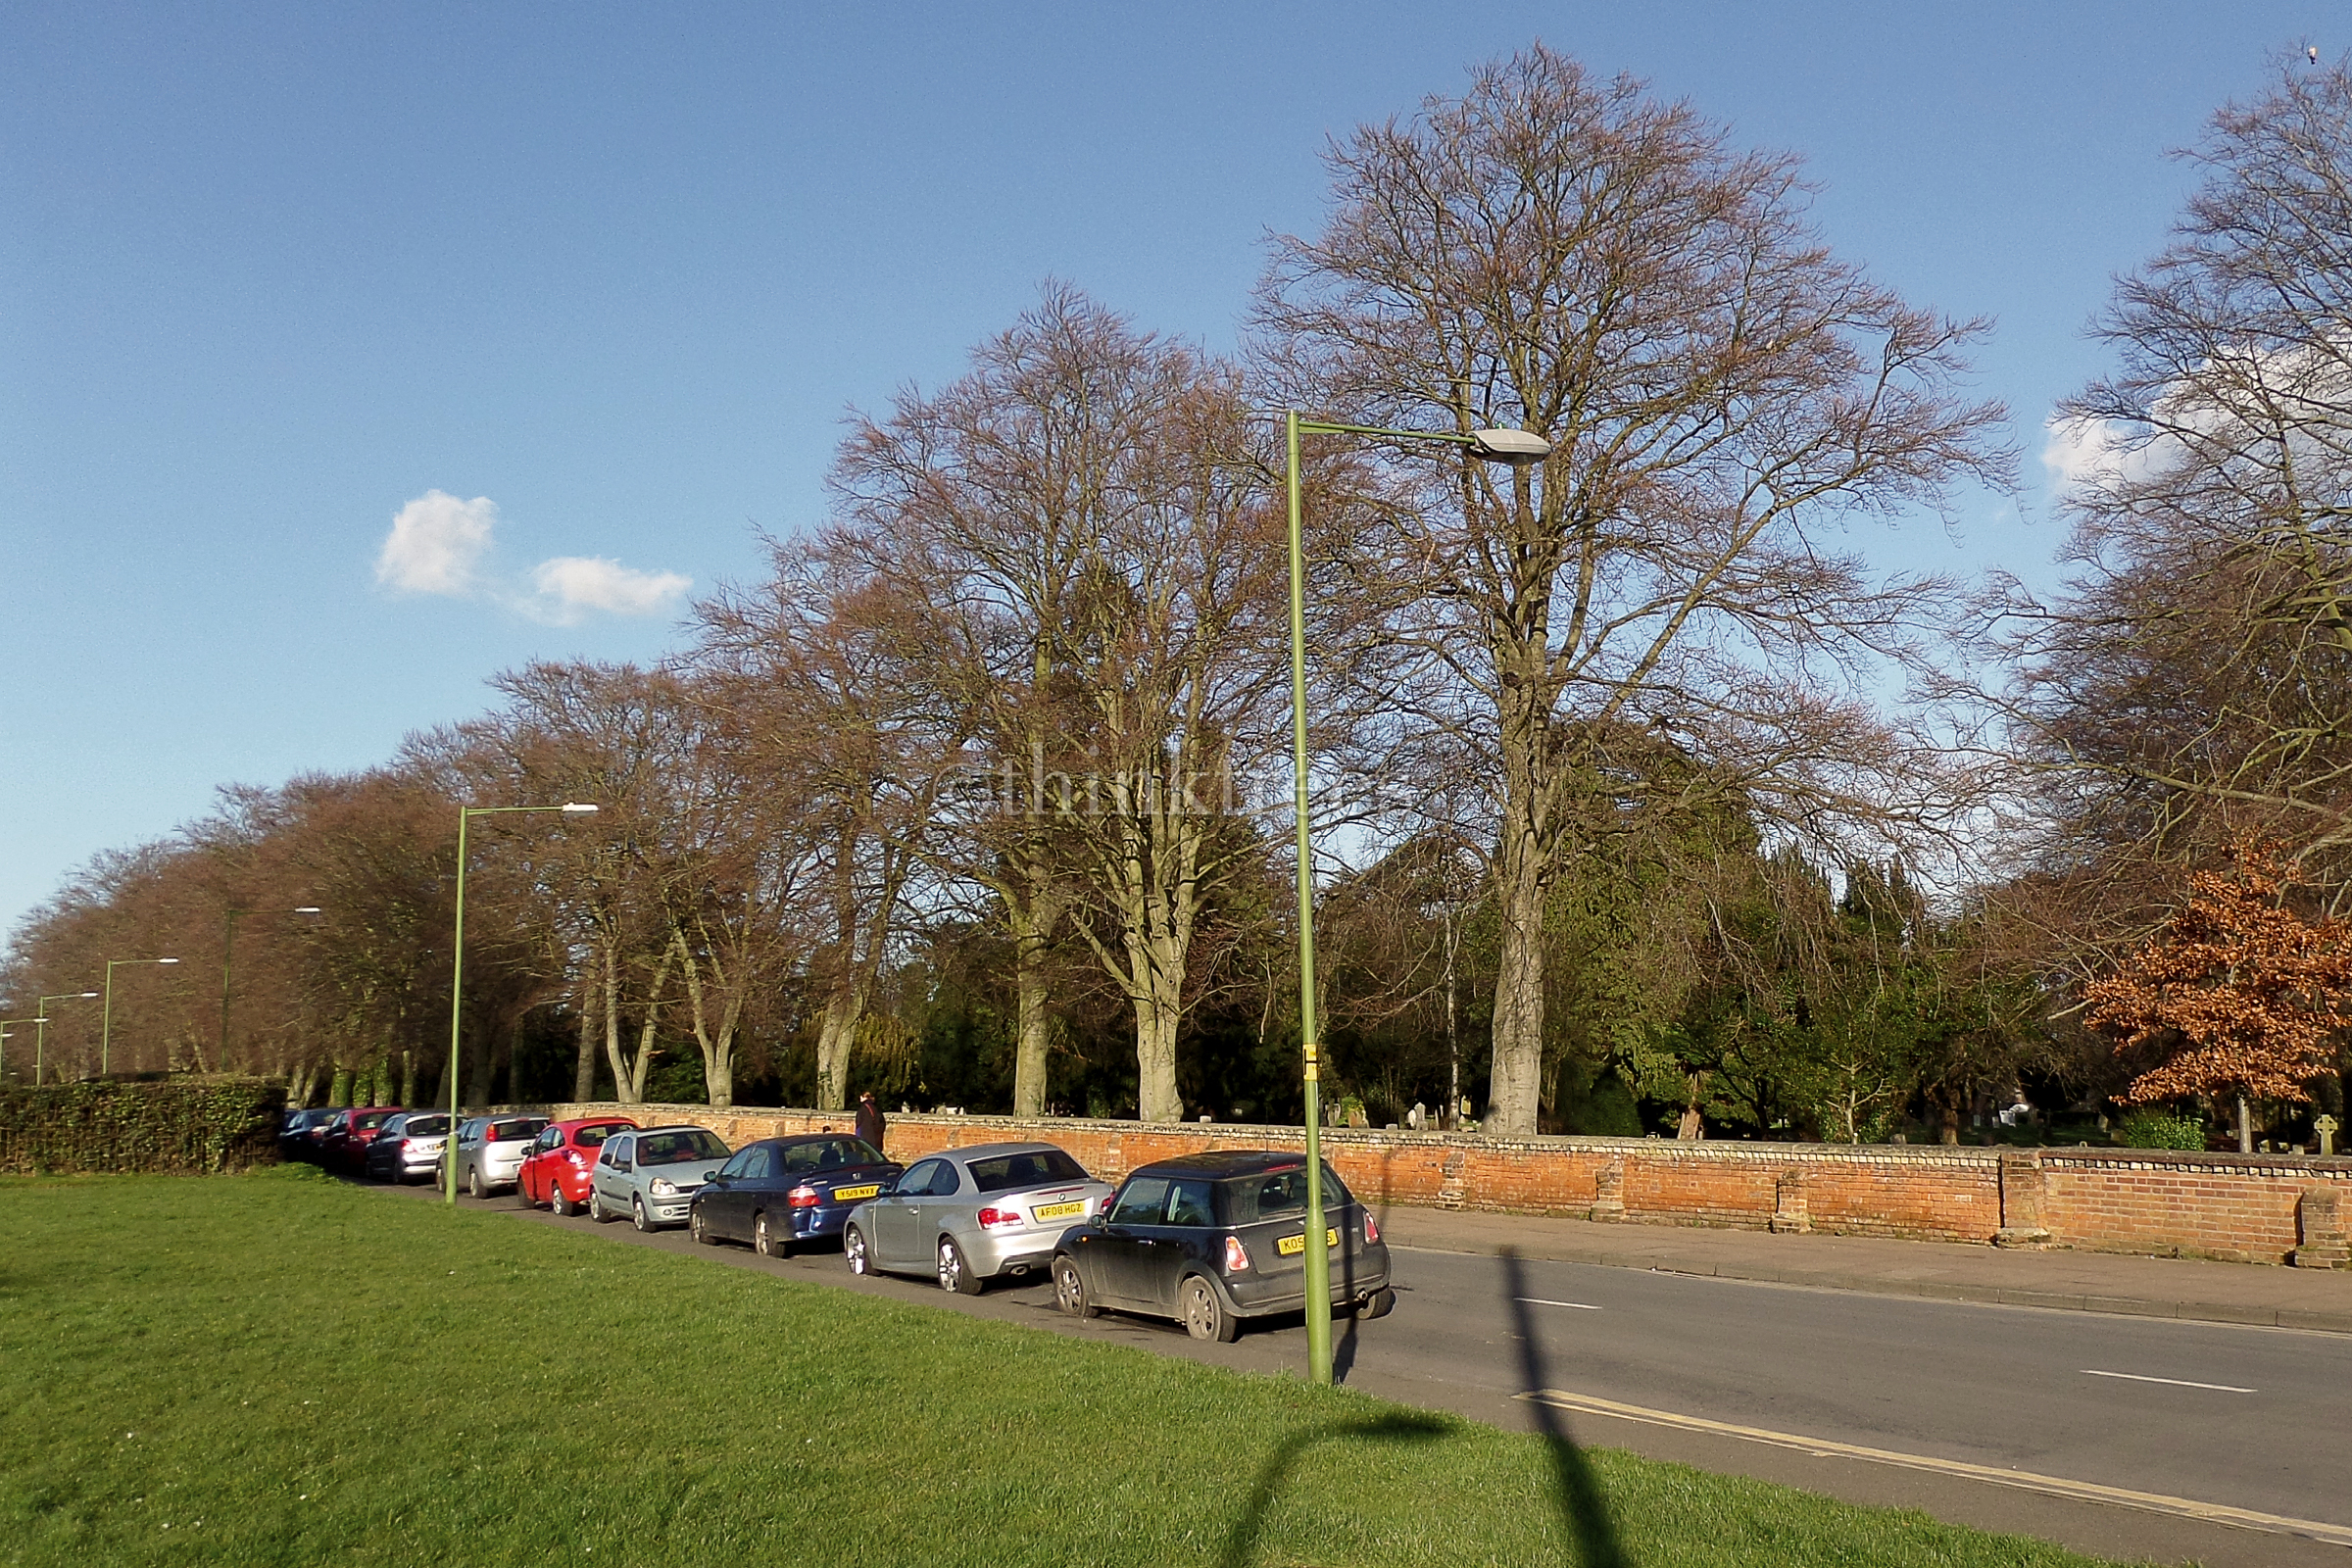 An impressive line of mature beech trees running the length of Cemetery Road in Bishop's Stortford